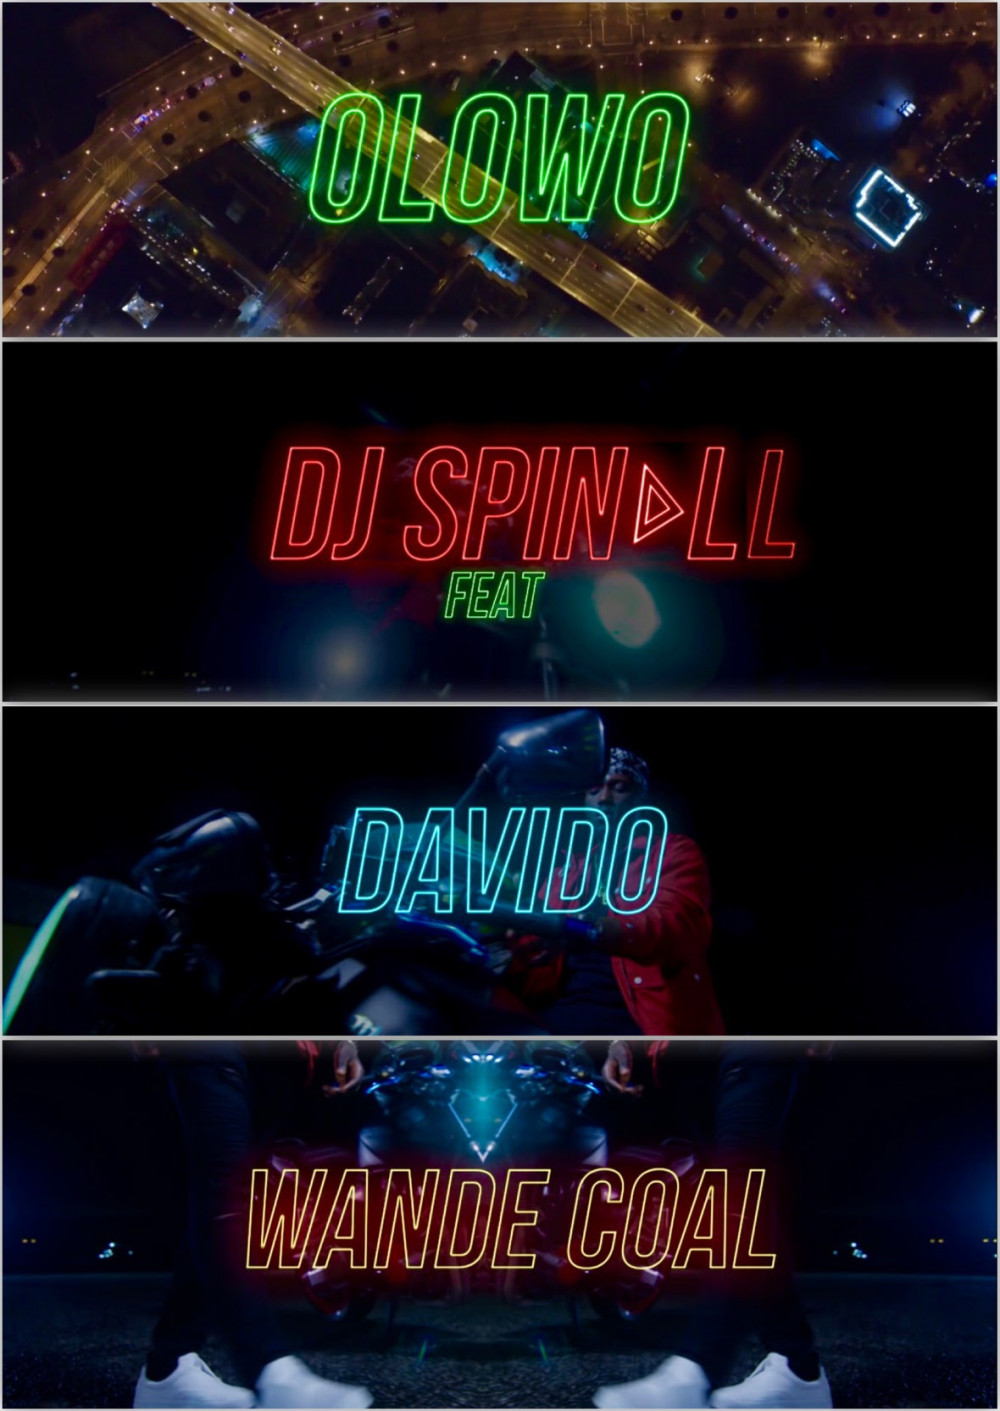 New Video: DJ Spinall feat. Davido & Wande Coal – Olowo